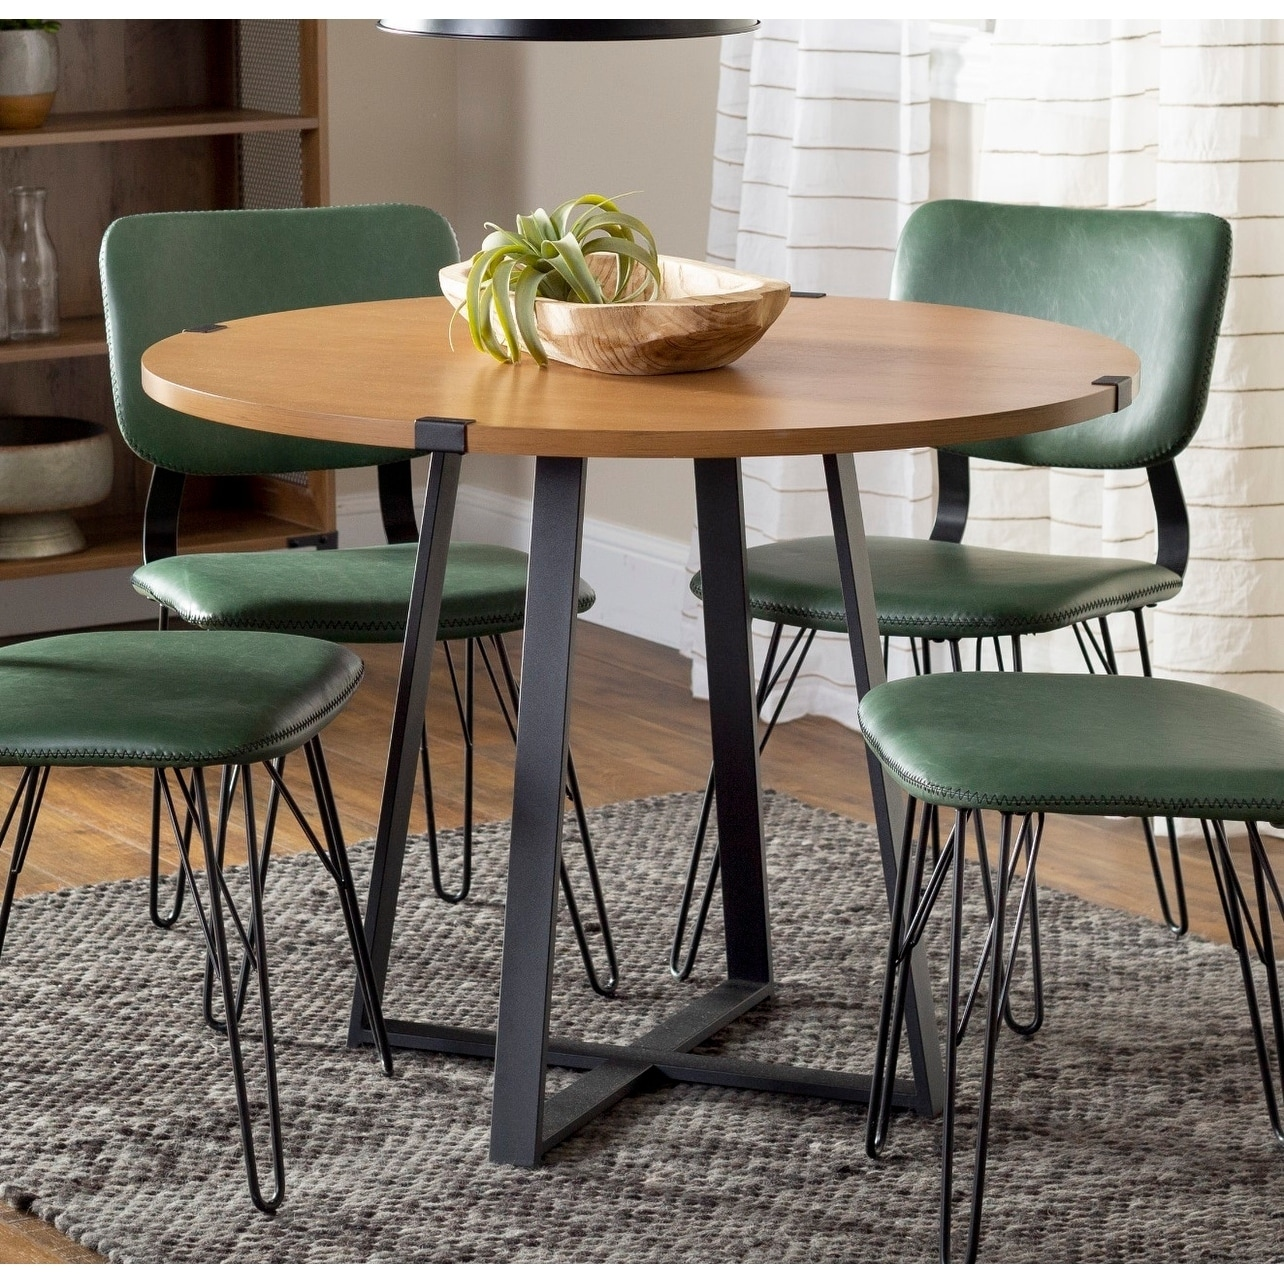 Buy Metal Kitchen & Dining Room Tables Online at Overstock ...